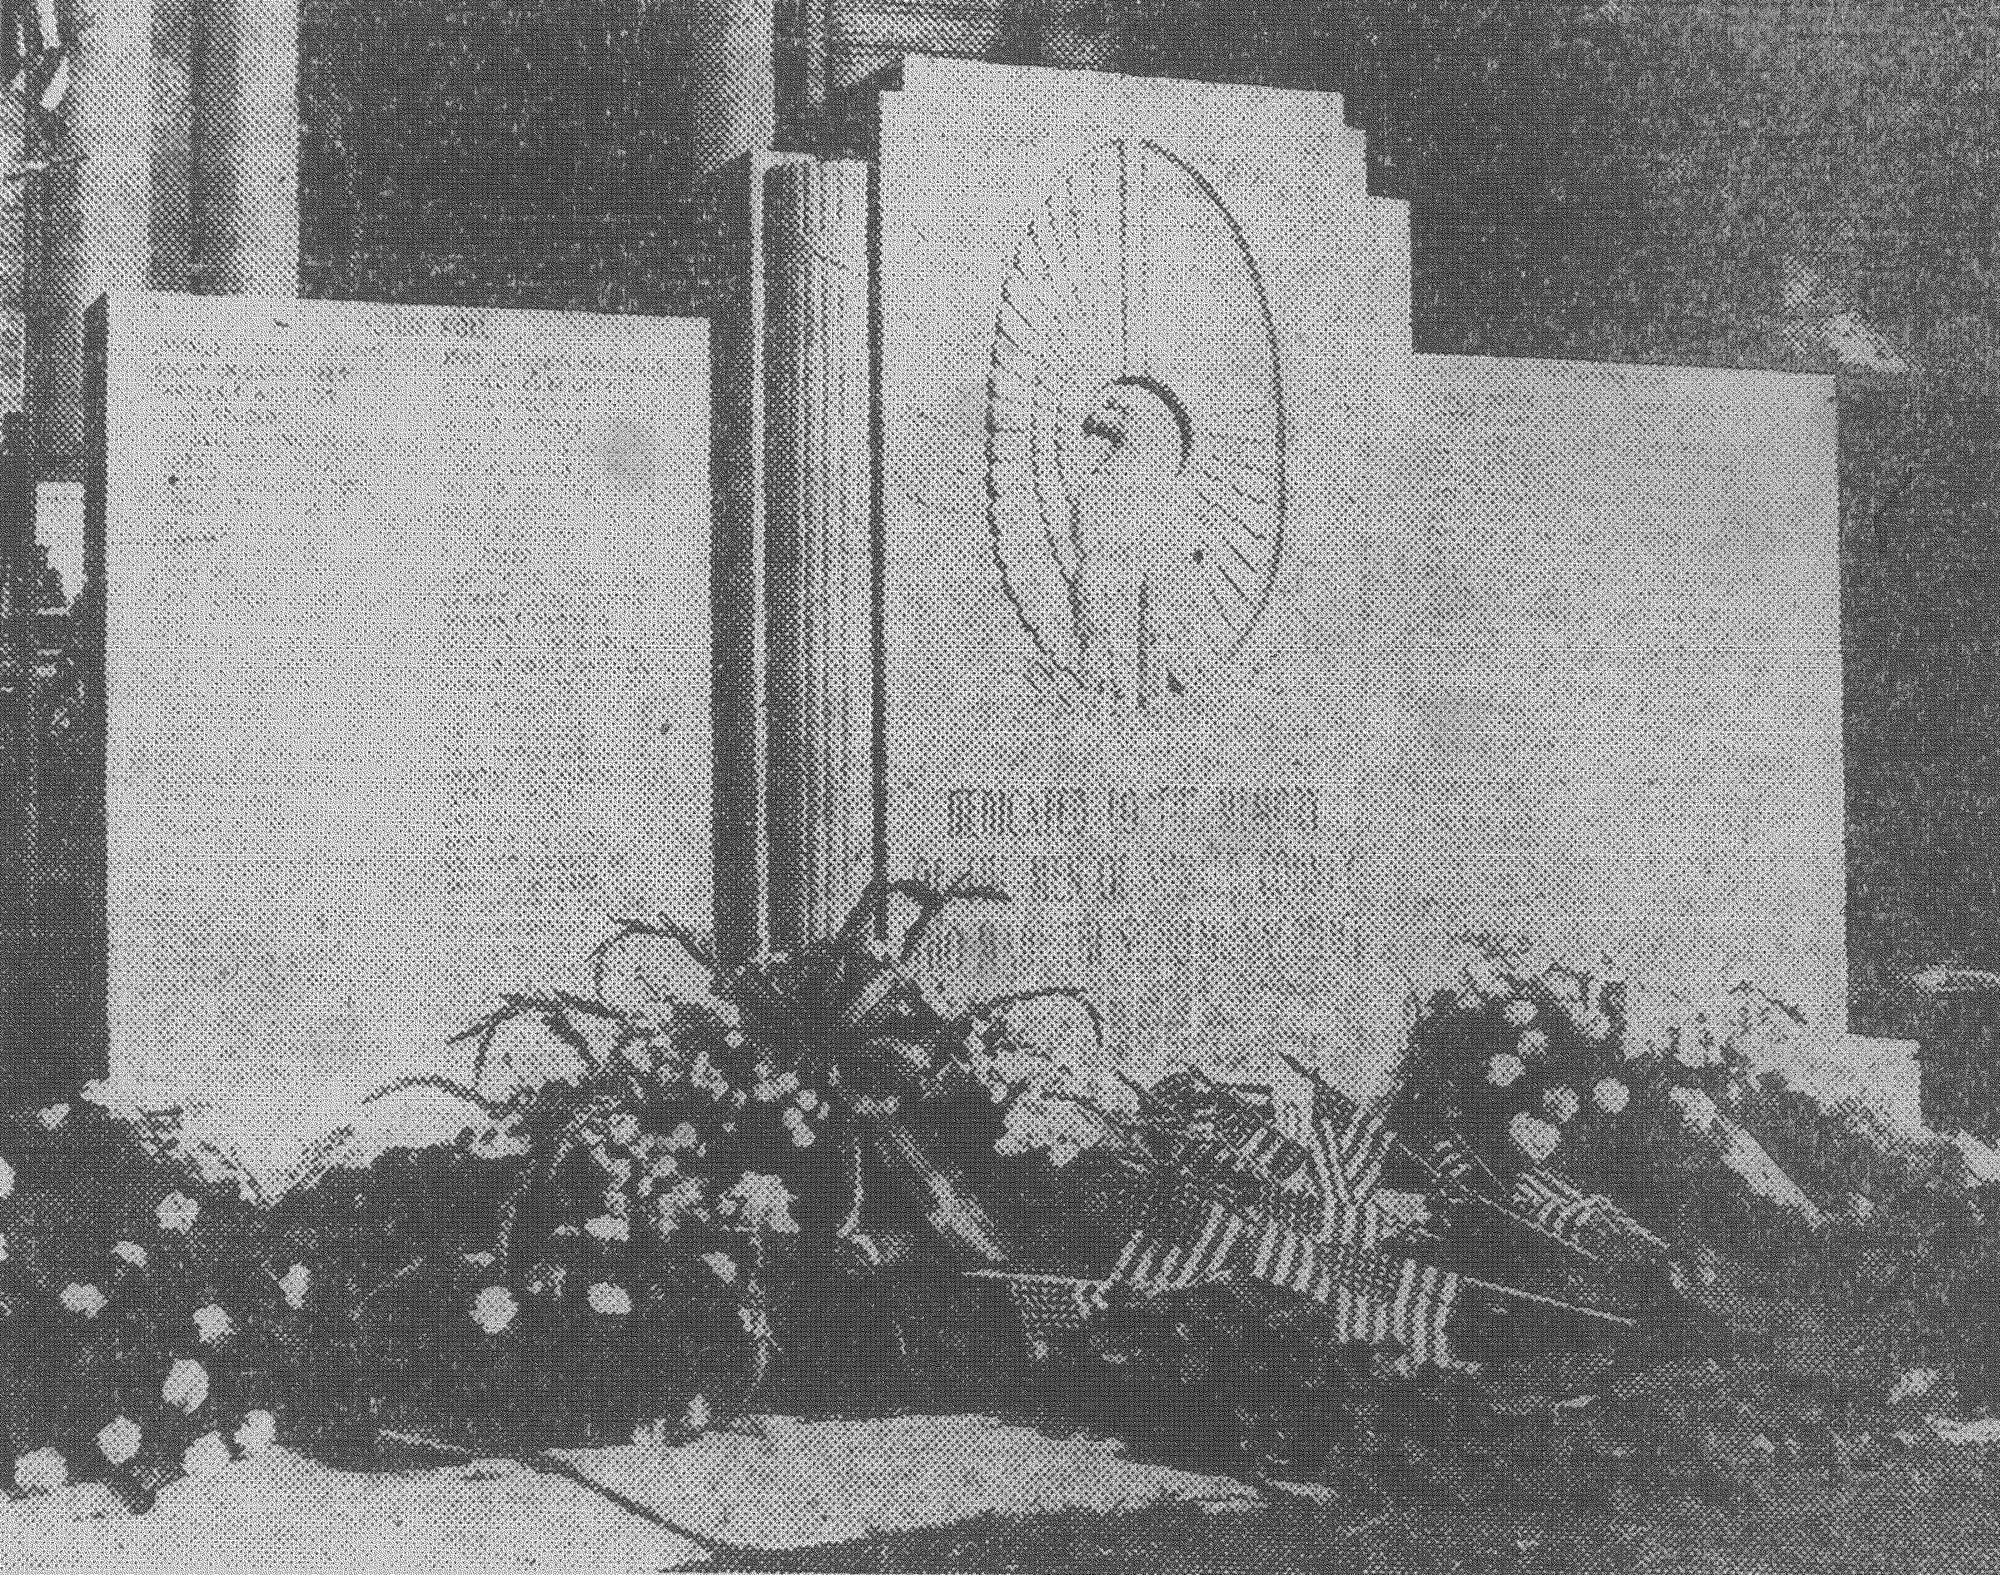 A white marble memorial honoring those from the city and county of Sumter who died in service during World War II was unveiled in 1949 in front of the county courthouse. It bears the names of 131 who died fighting for Americans' freedom. It was sponsored by the Sumter County Pilot Club, which conducted a 2-year fundraising campaign to build it.